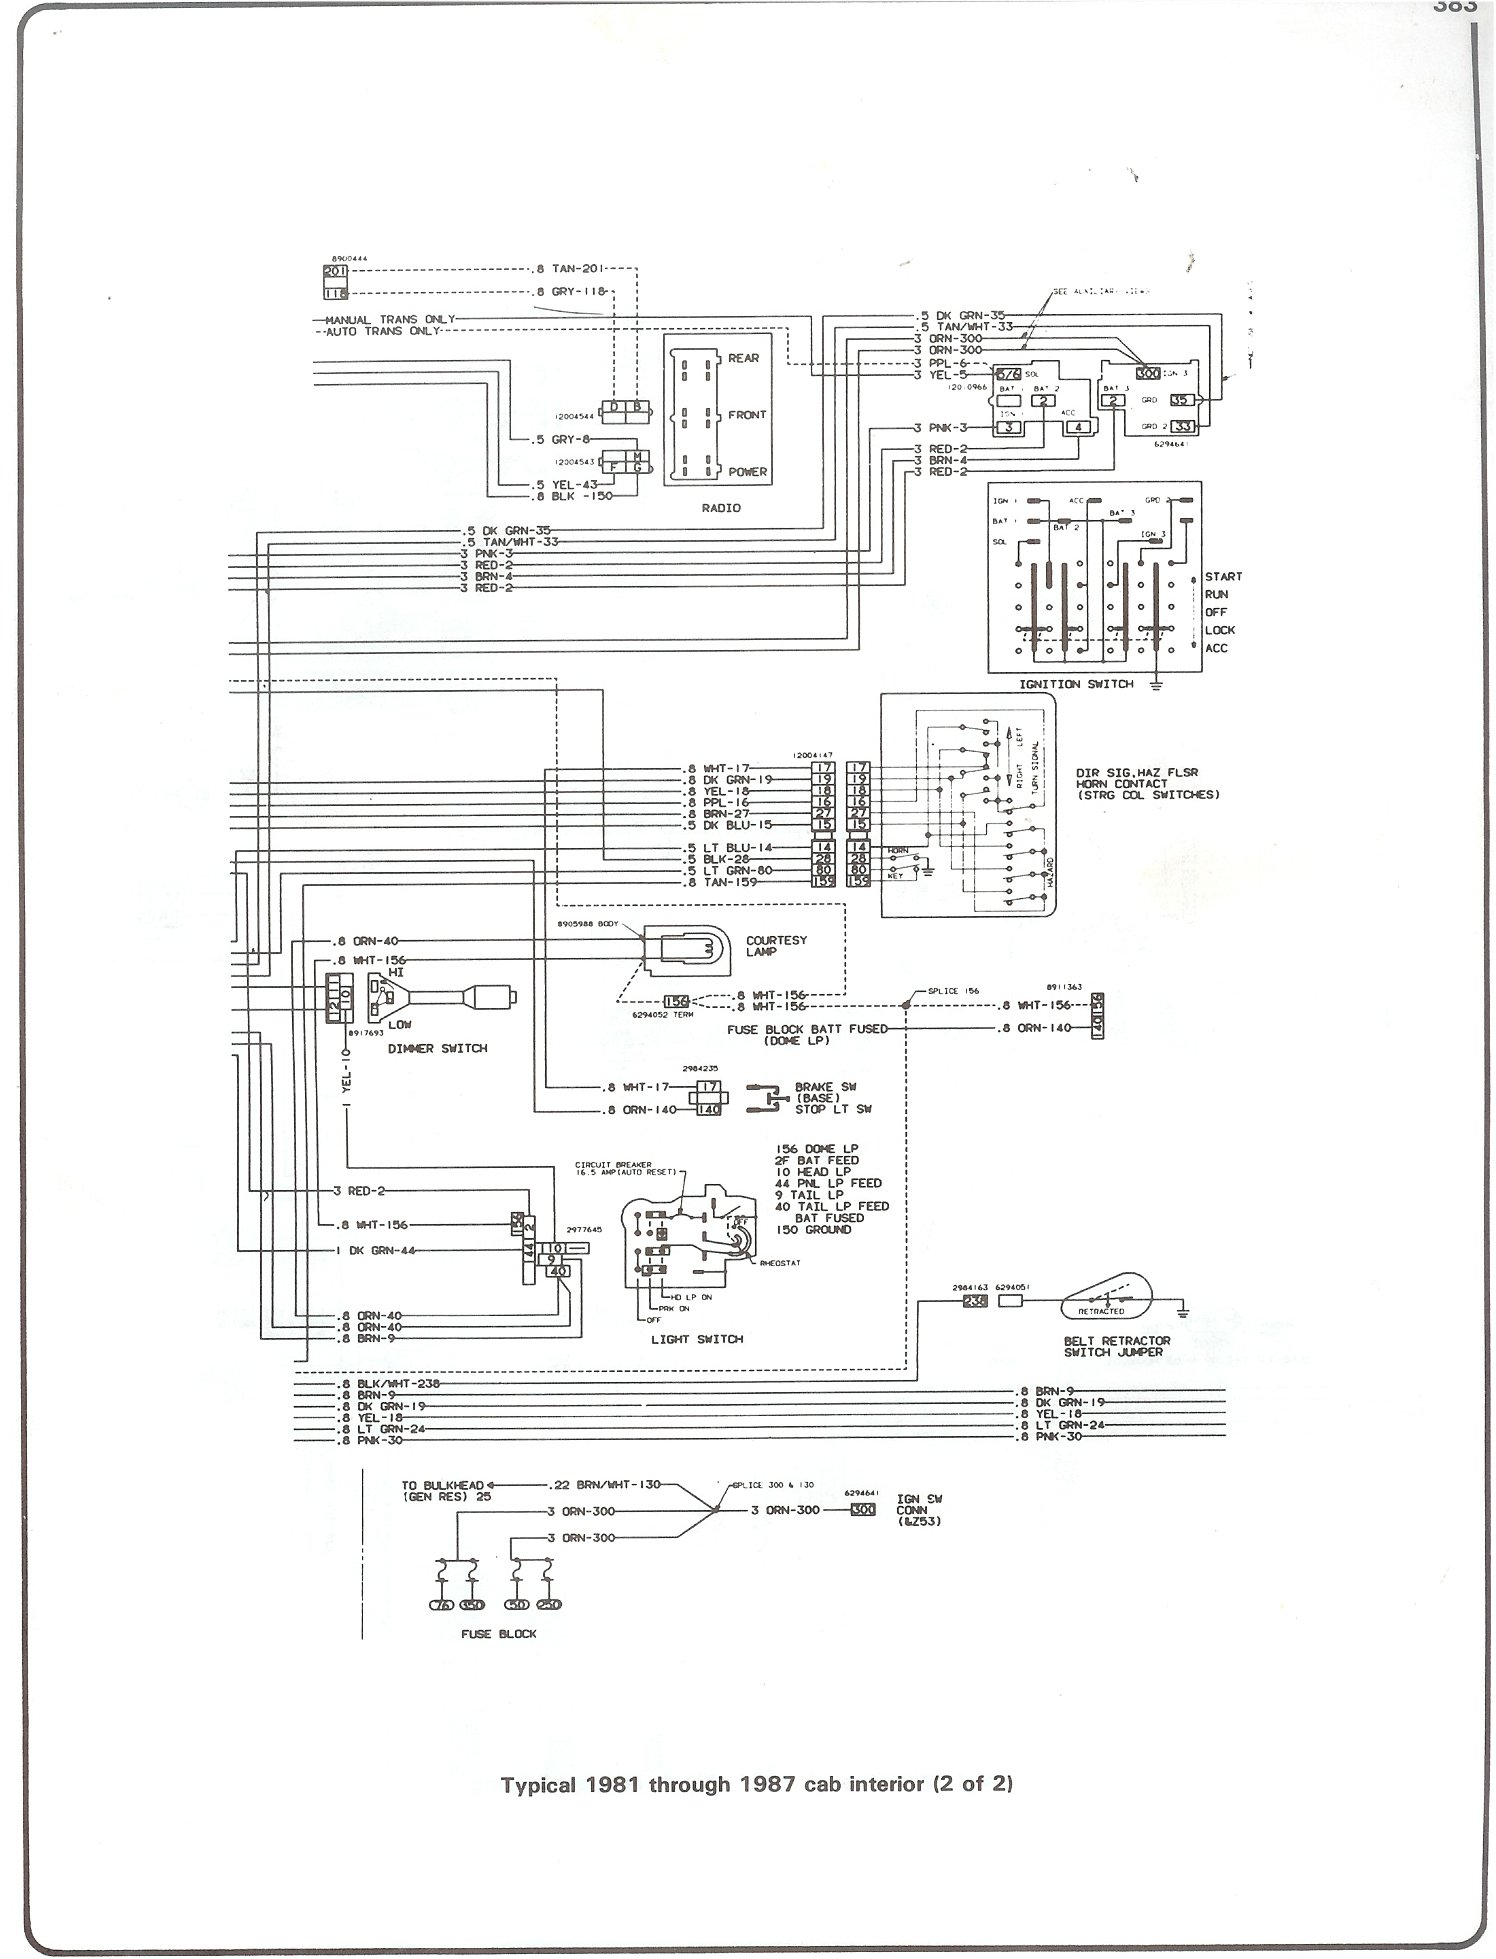 81 87_cab_inter_pg2 complete 73 87 wiring diagrams 1987 chevy wiring diagram at soozxer.org